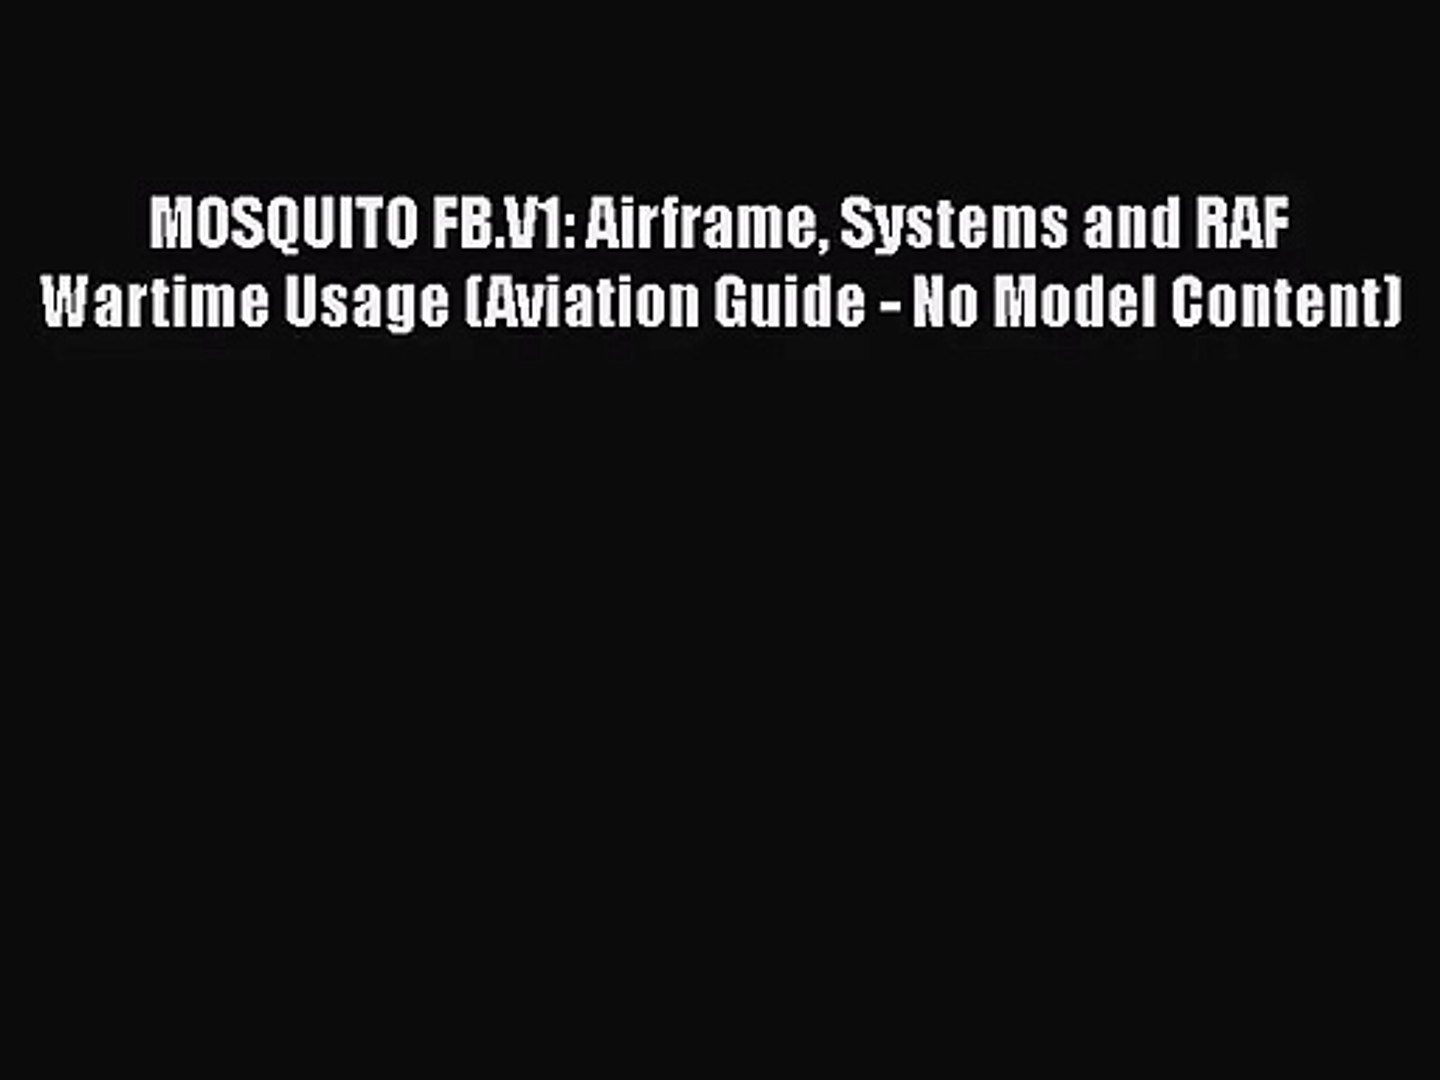 MOSQUITO FB.V1: Airframe Systems and RAF Wartime Usage (Aviation Guide - No Model Content)